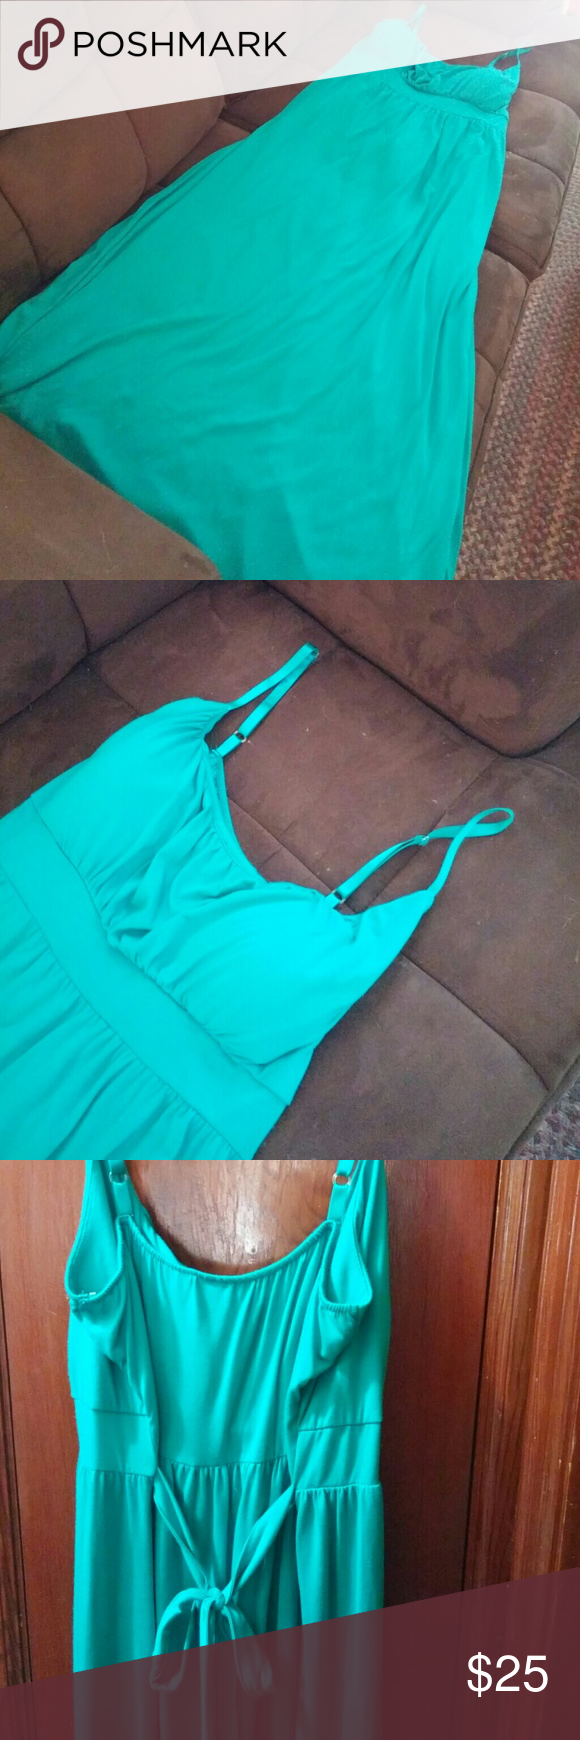 Allison Brittney brand maxi dress Size 3X Allison Brittney brand turquoise maxi dress. Has adjustable bra straps and lightly padded bra cups. Padding is removeable if you want it that way. Dress is soft and silky, very comfy! This is NWOT and has never even been tried on. Allison Brittney Dresses Maxi